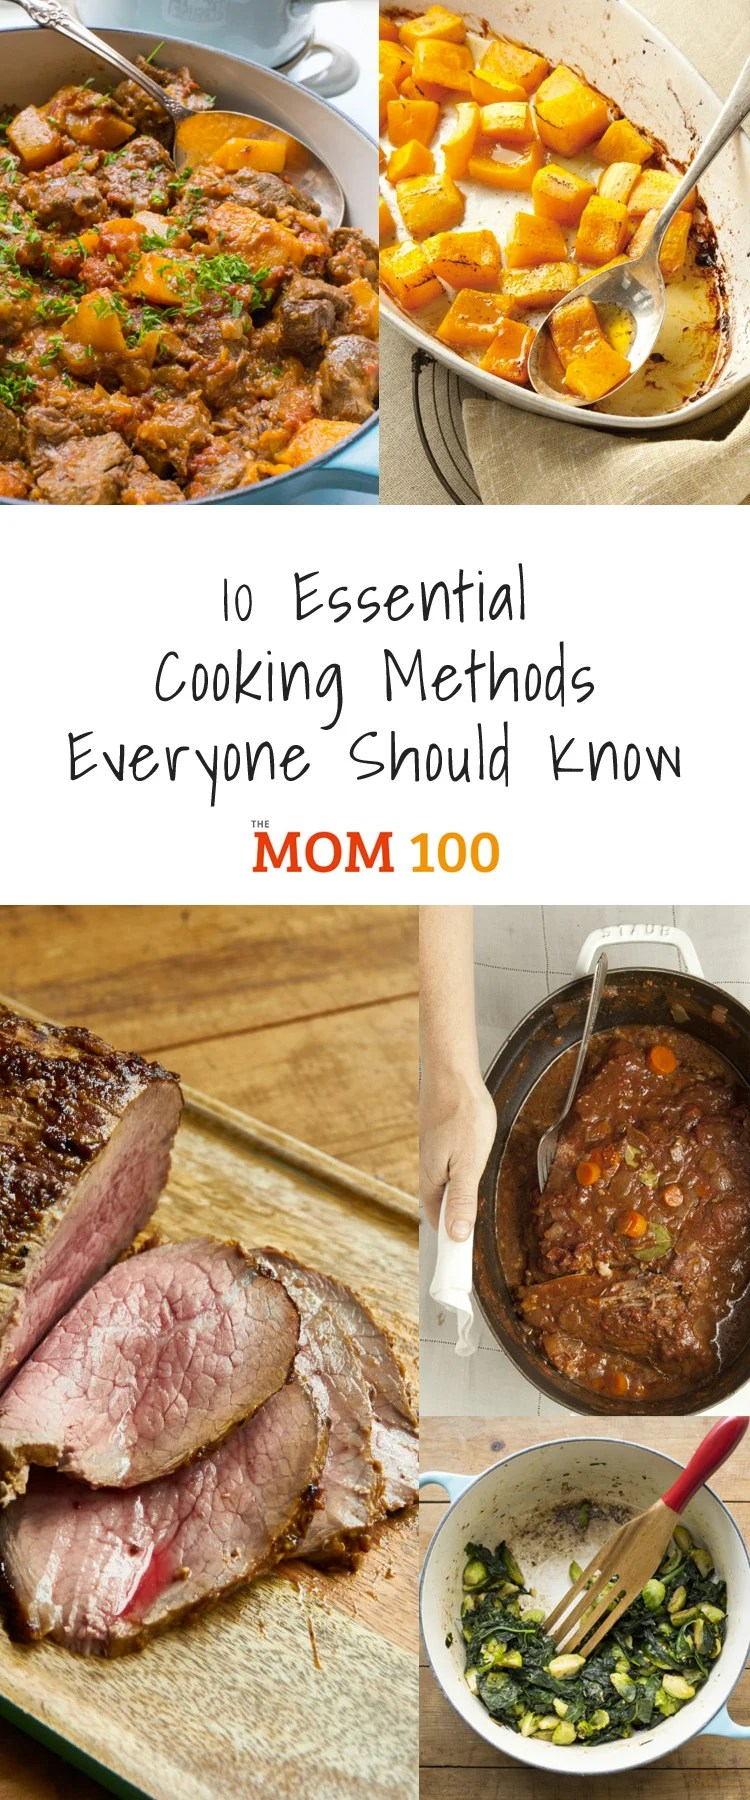 Learn everything you need to know in the kitchen from sautéing to grilling in 10 Essential Cooking Methods Everyone Should Know.